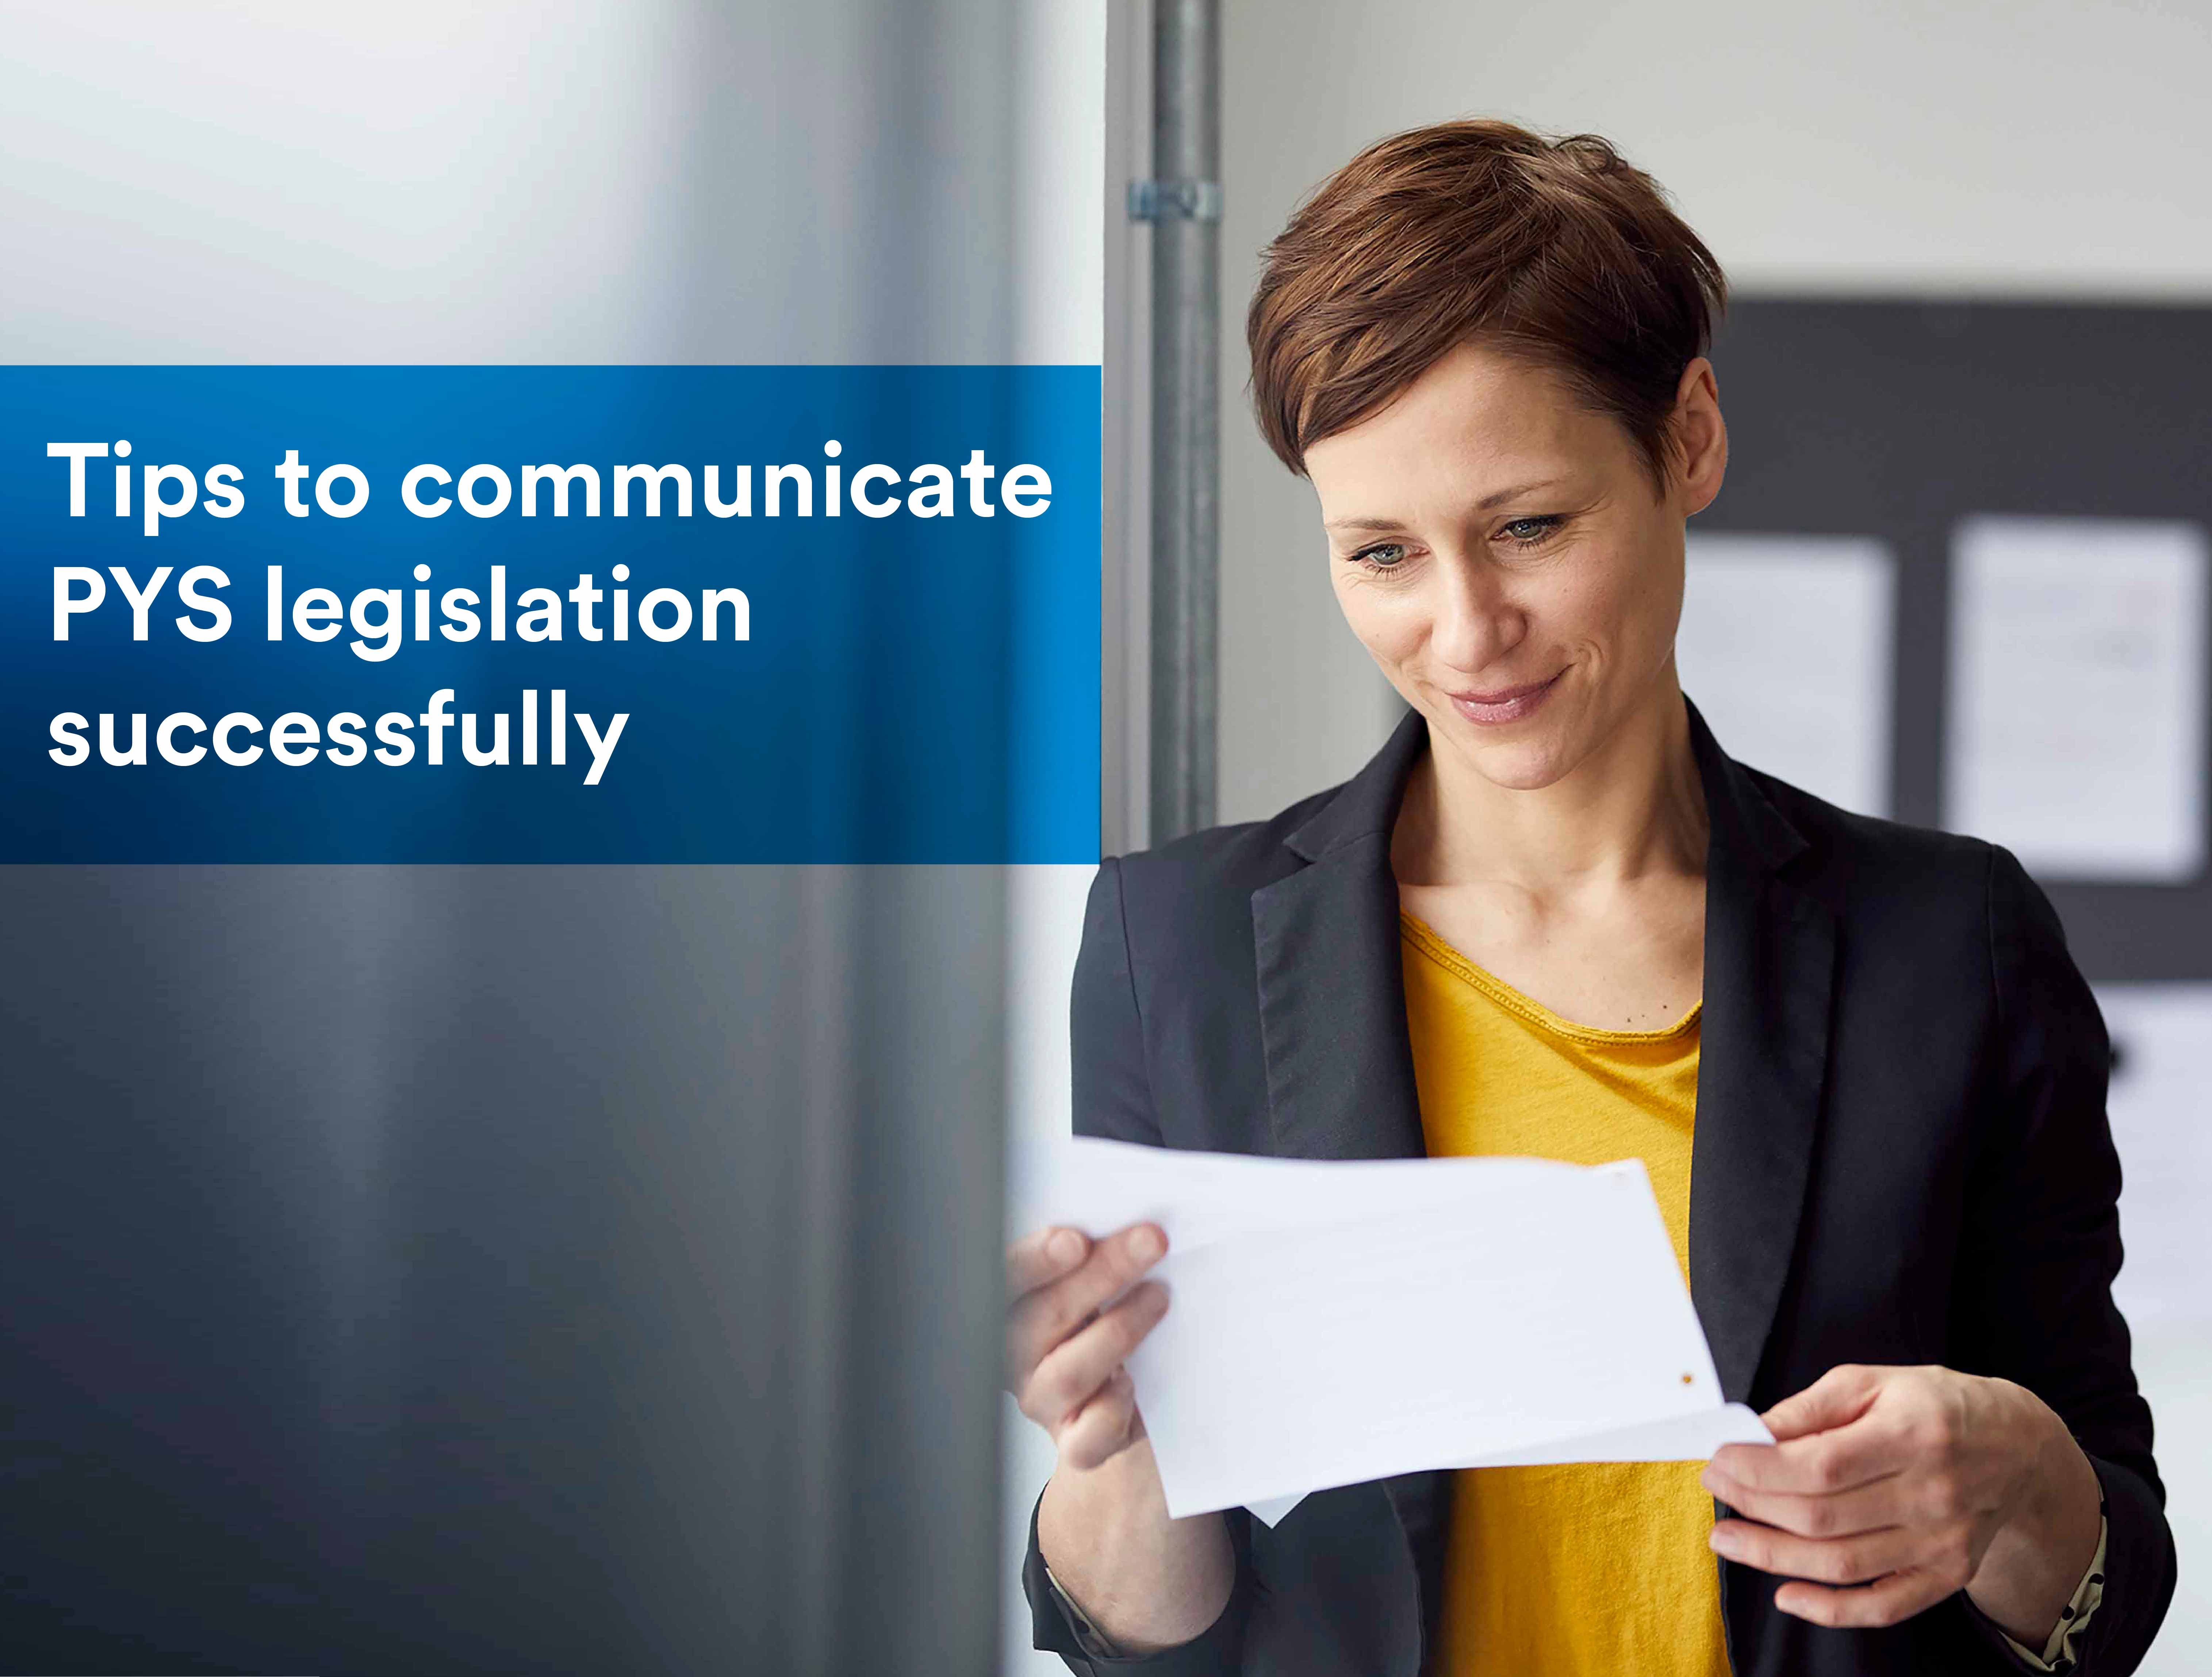 Tips to communicate PYS legislation successfully